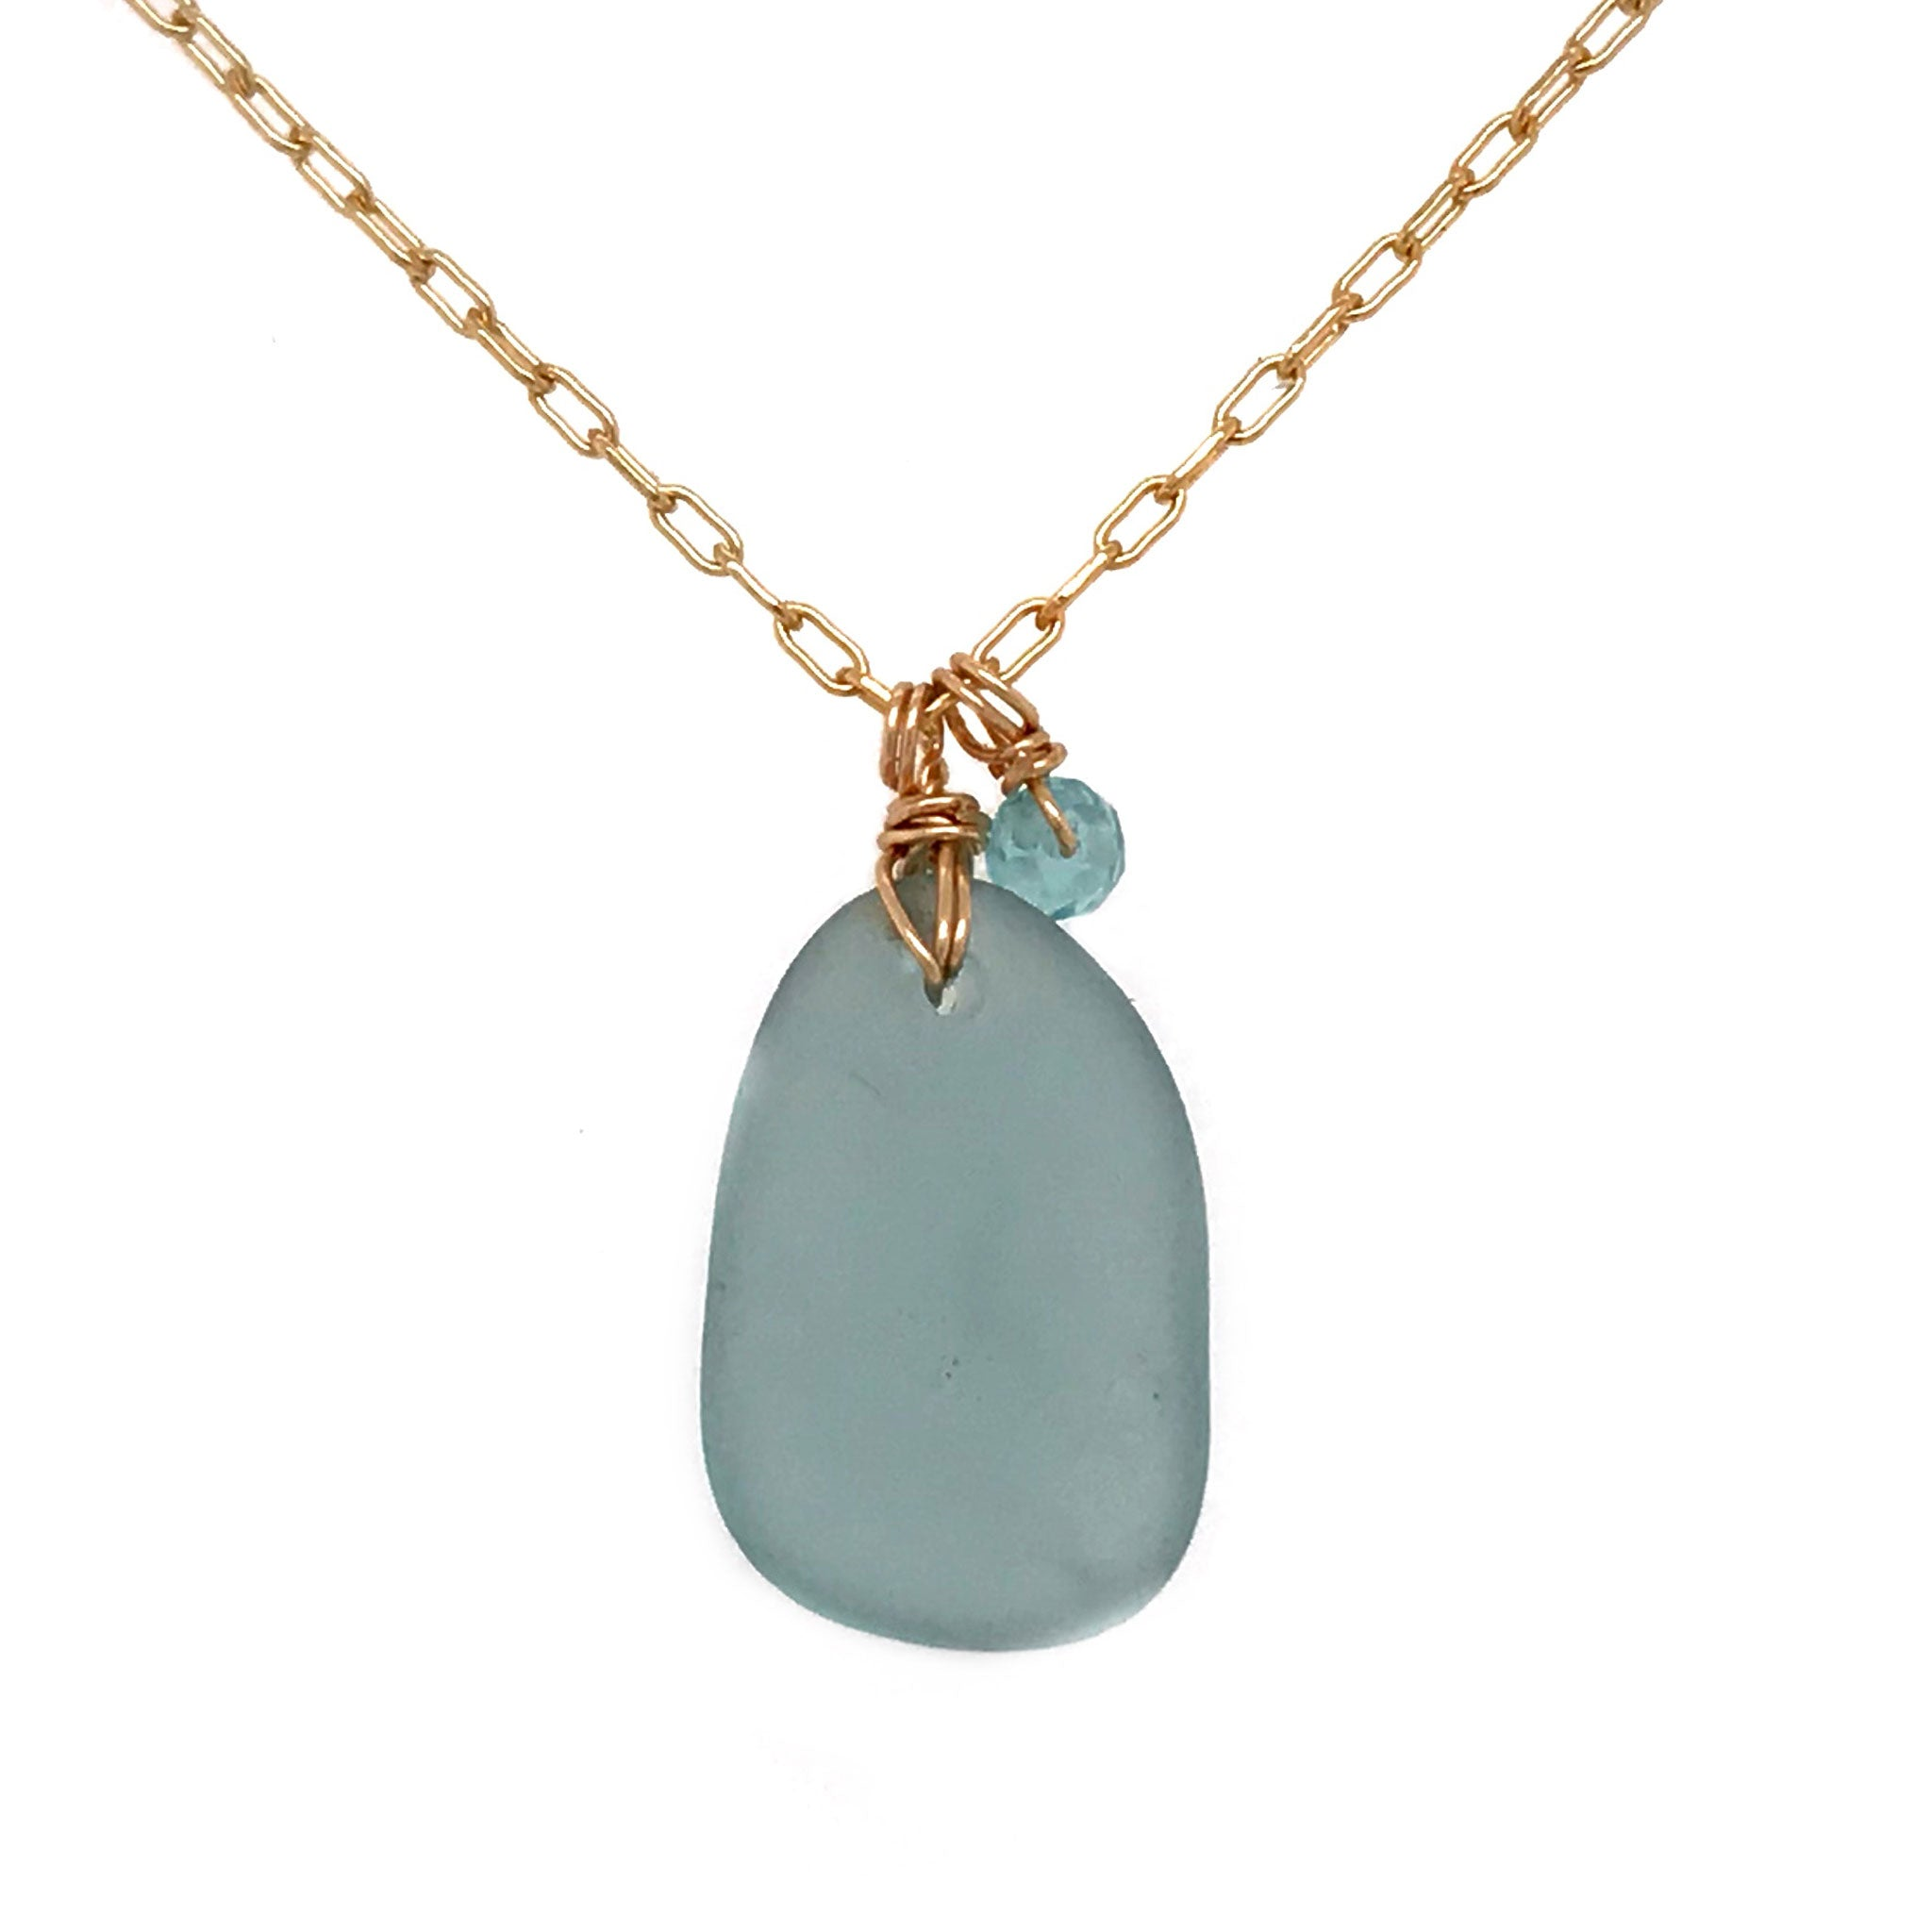 aqua seaglass necklace gold chain aquamarines kriket broadhurst jewellery